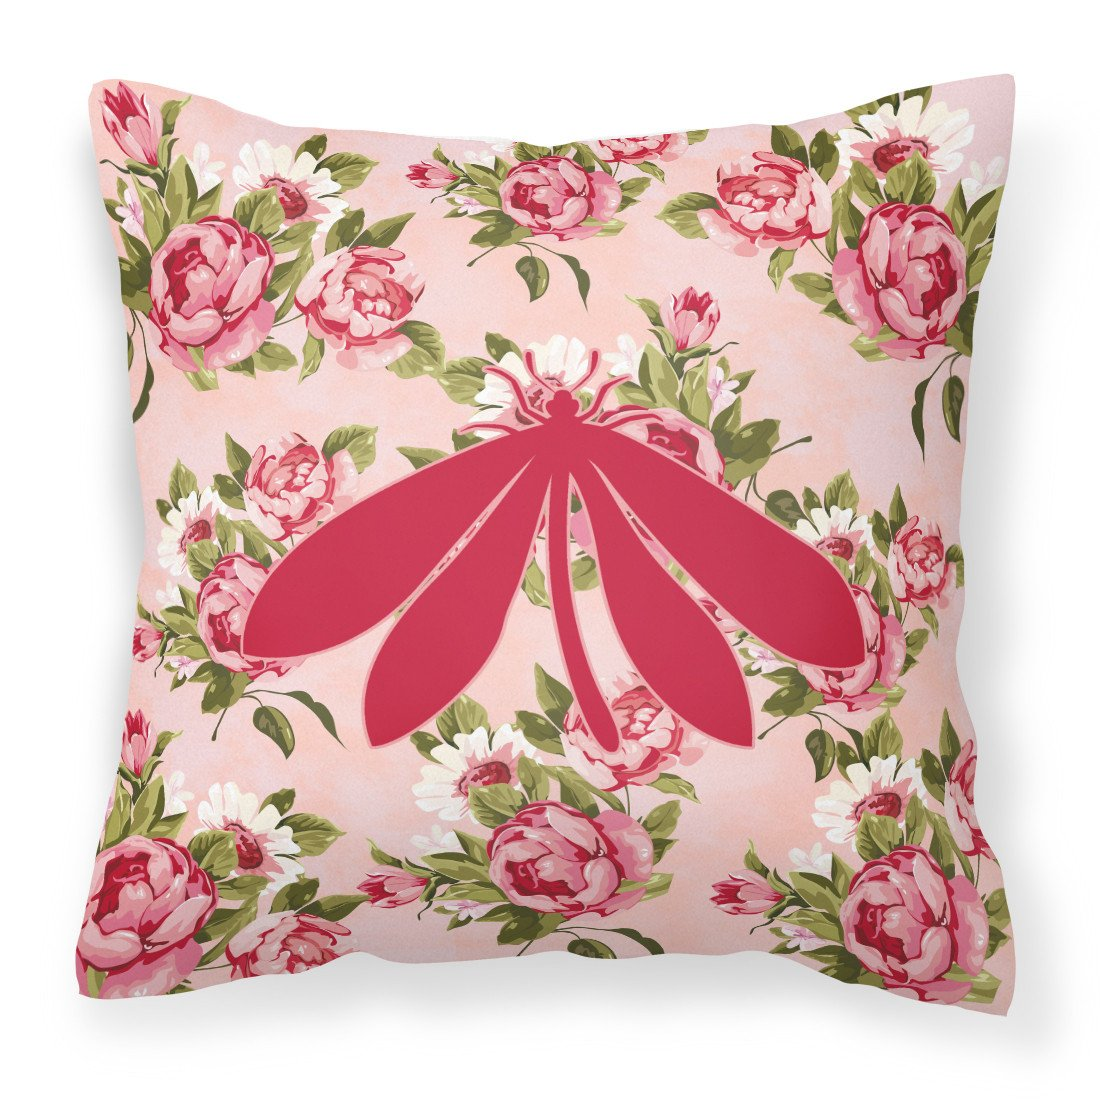 Moth Shabby Chic Pink Roses  Fabric Decorative Pillow BB1060-RS-PK-PW1414 by Caroline's Treasures